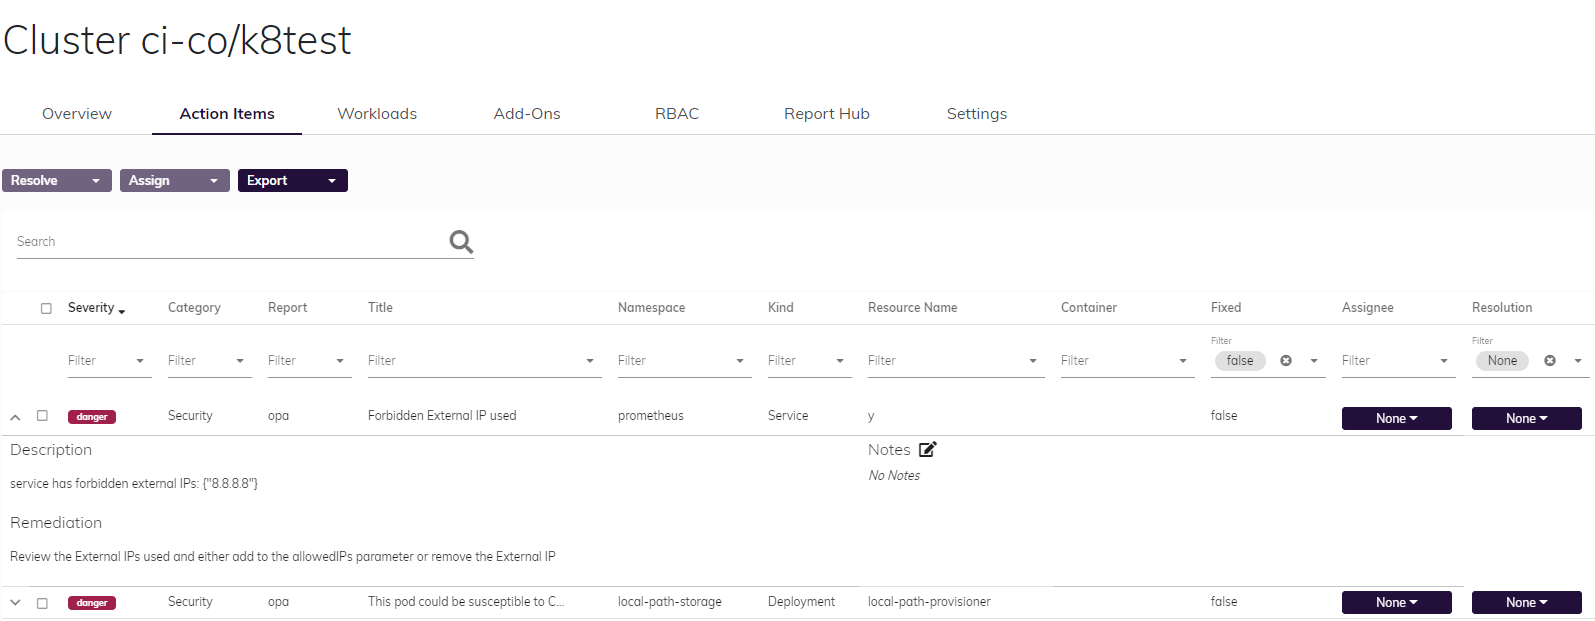 Screen shot of Fairwinds Insights Action Items